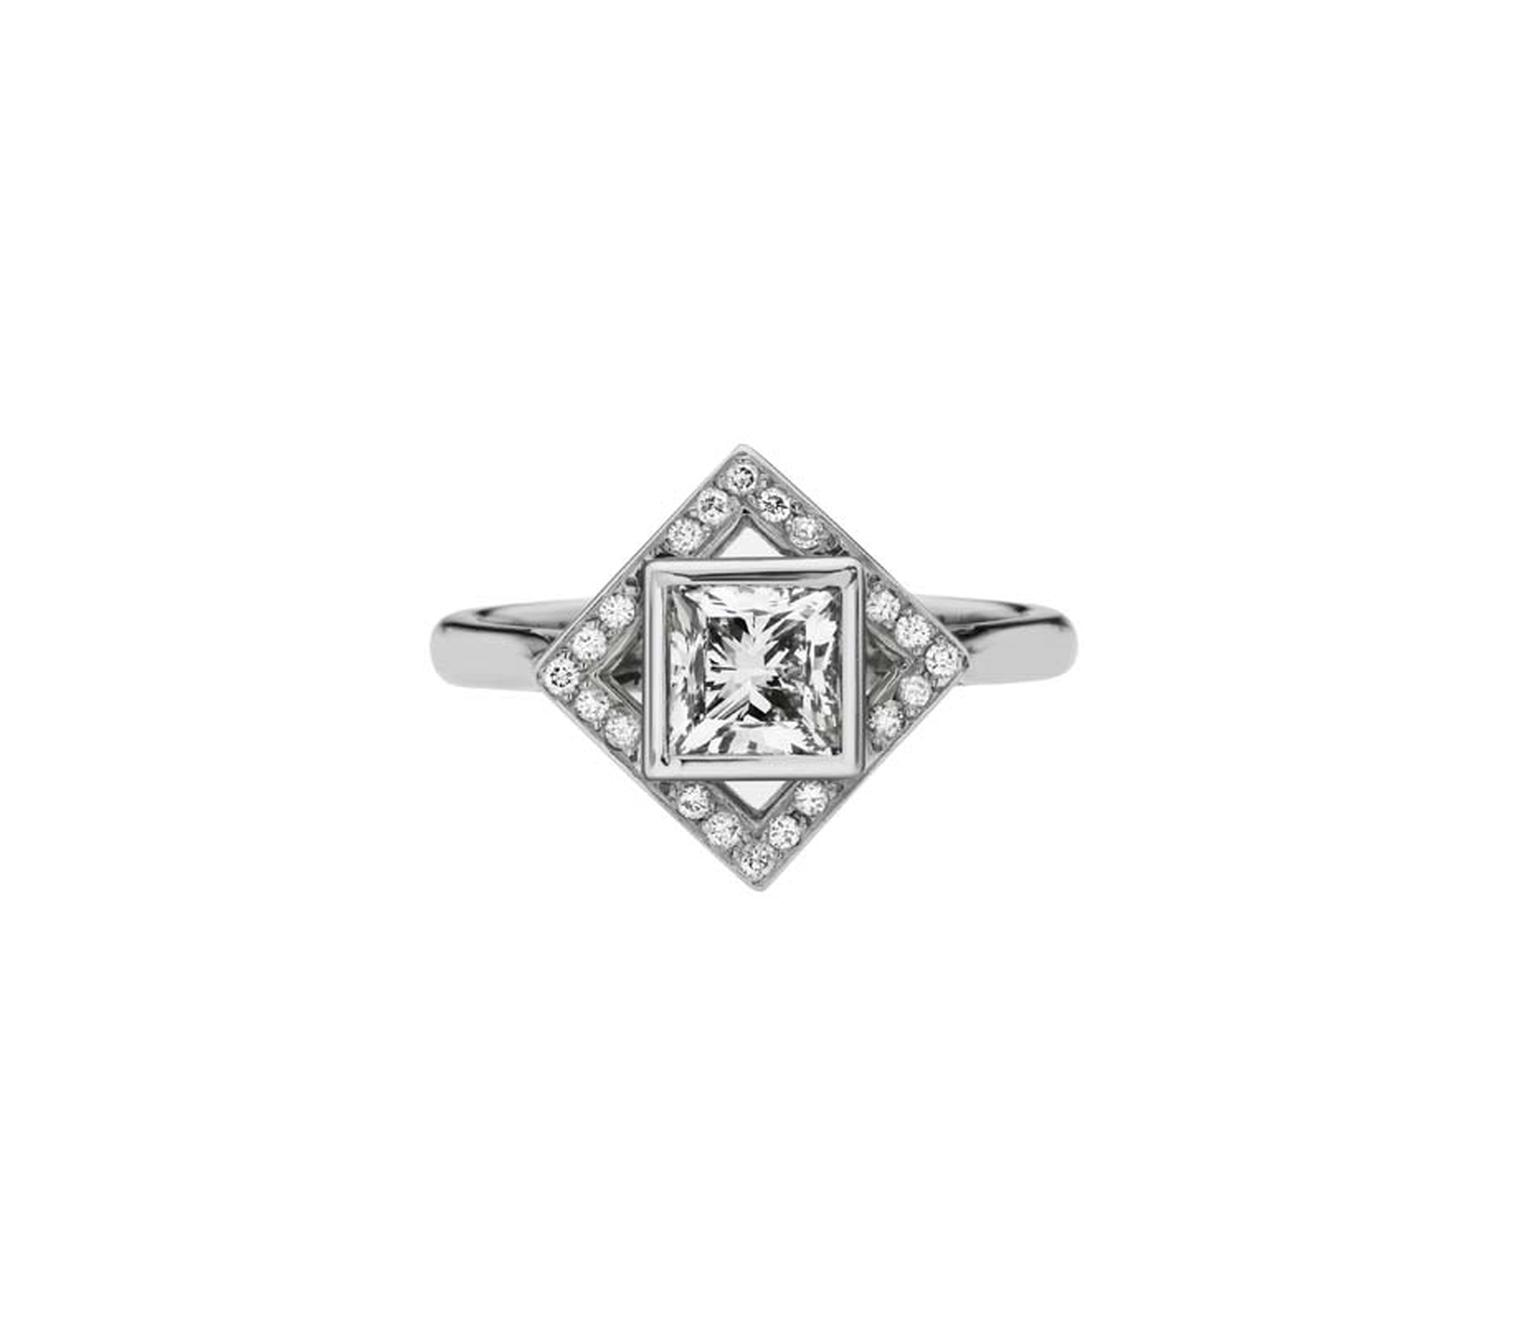 Ethan & Co princess-cut diamond ring (from £6,500).